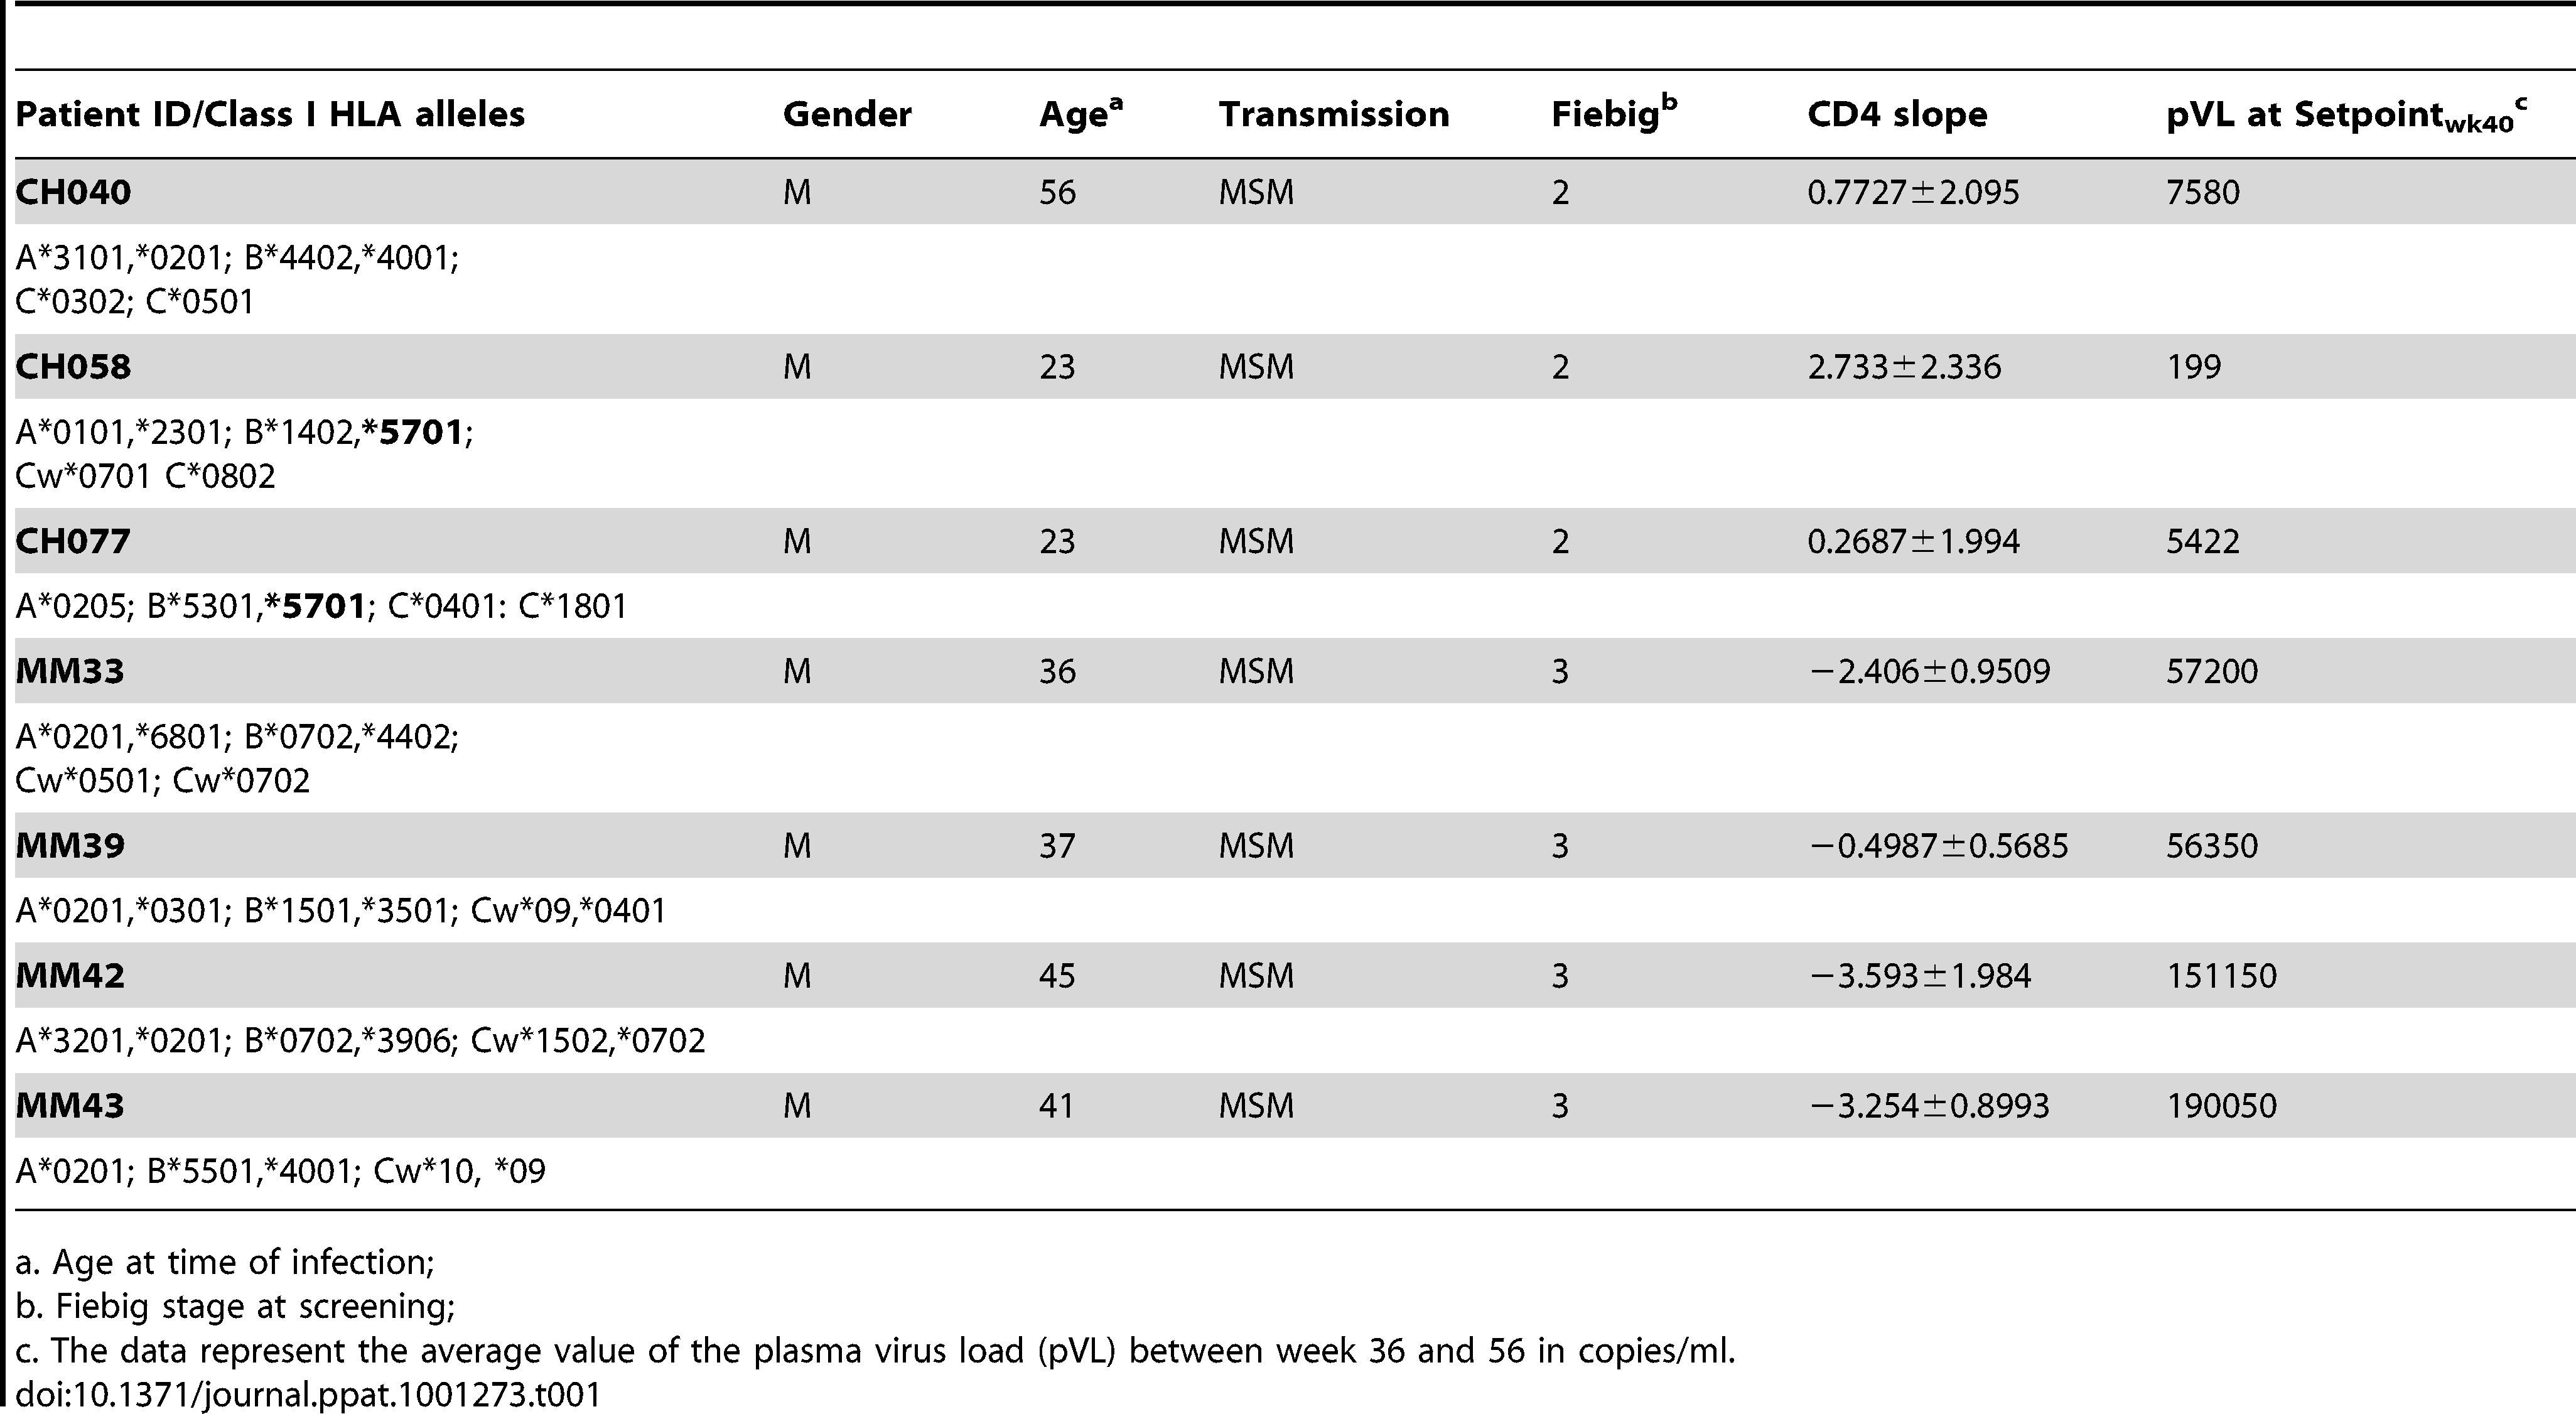 Patient demographic, CD4 slope, and plasma virus load set point, and class I HLA.